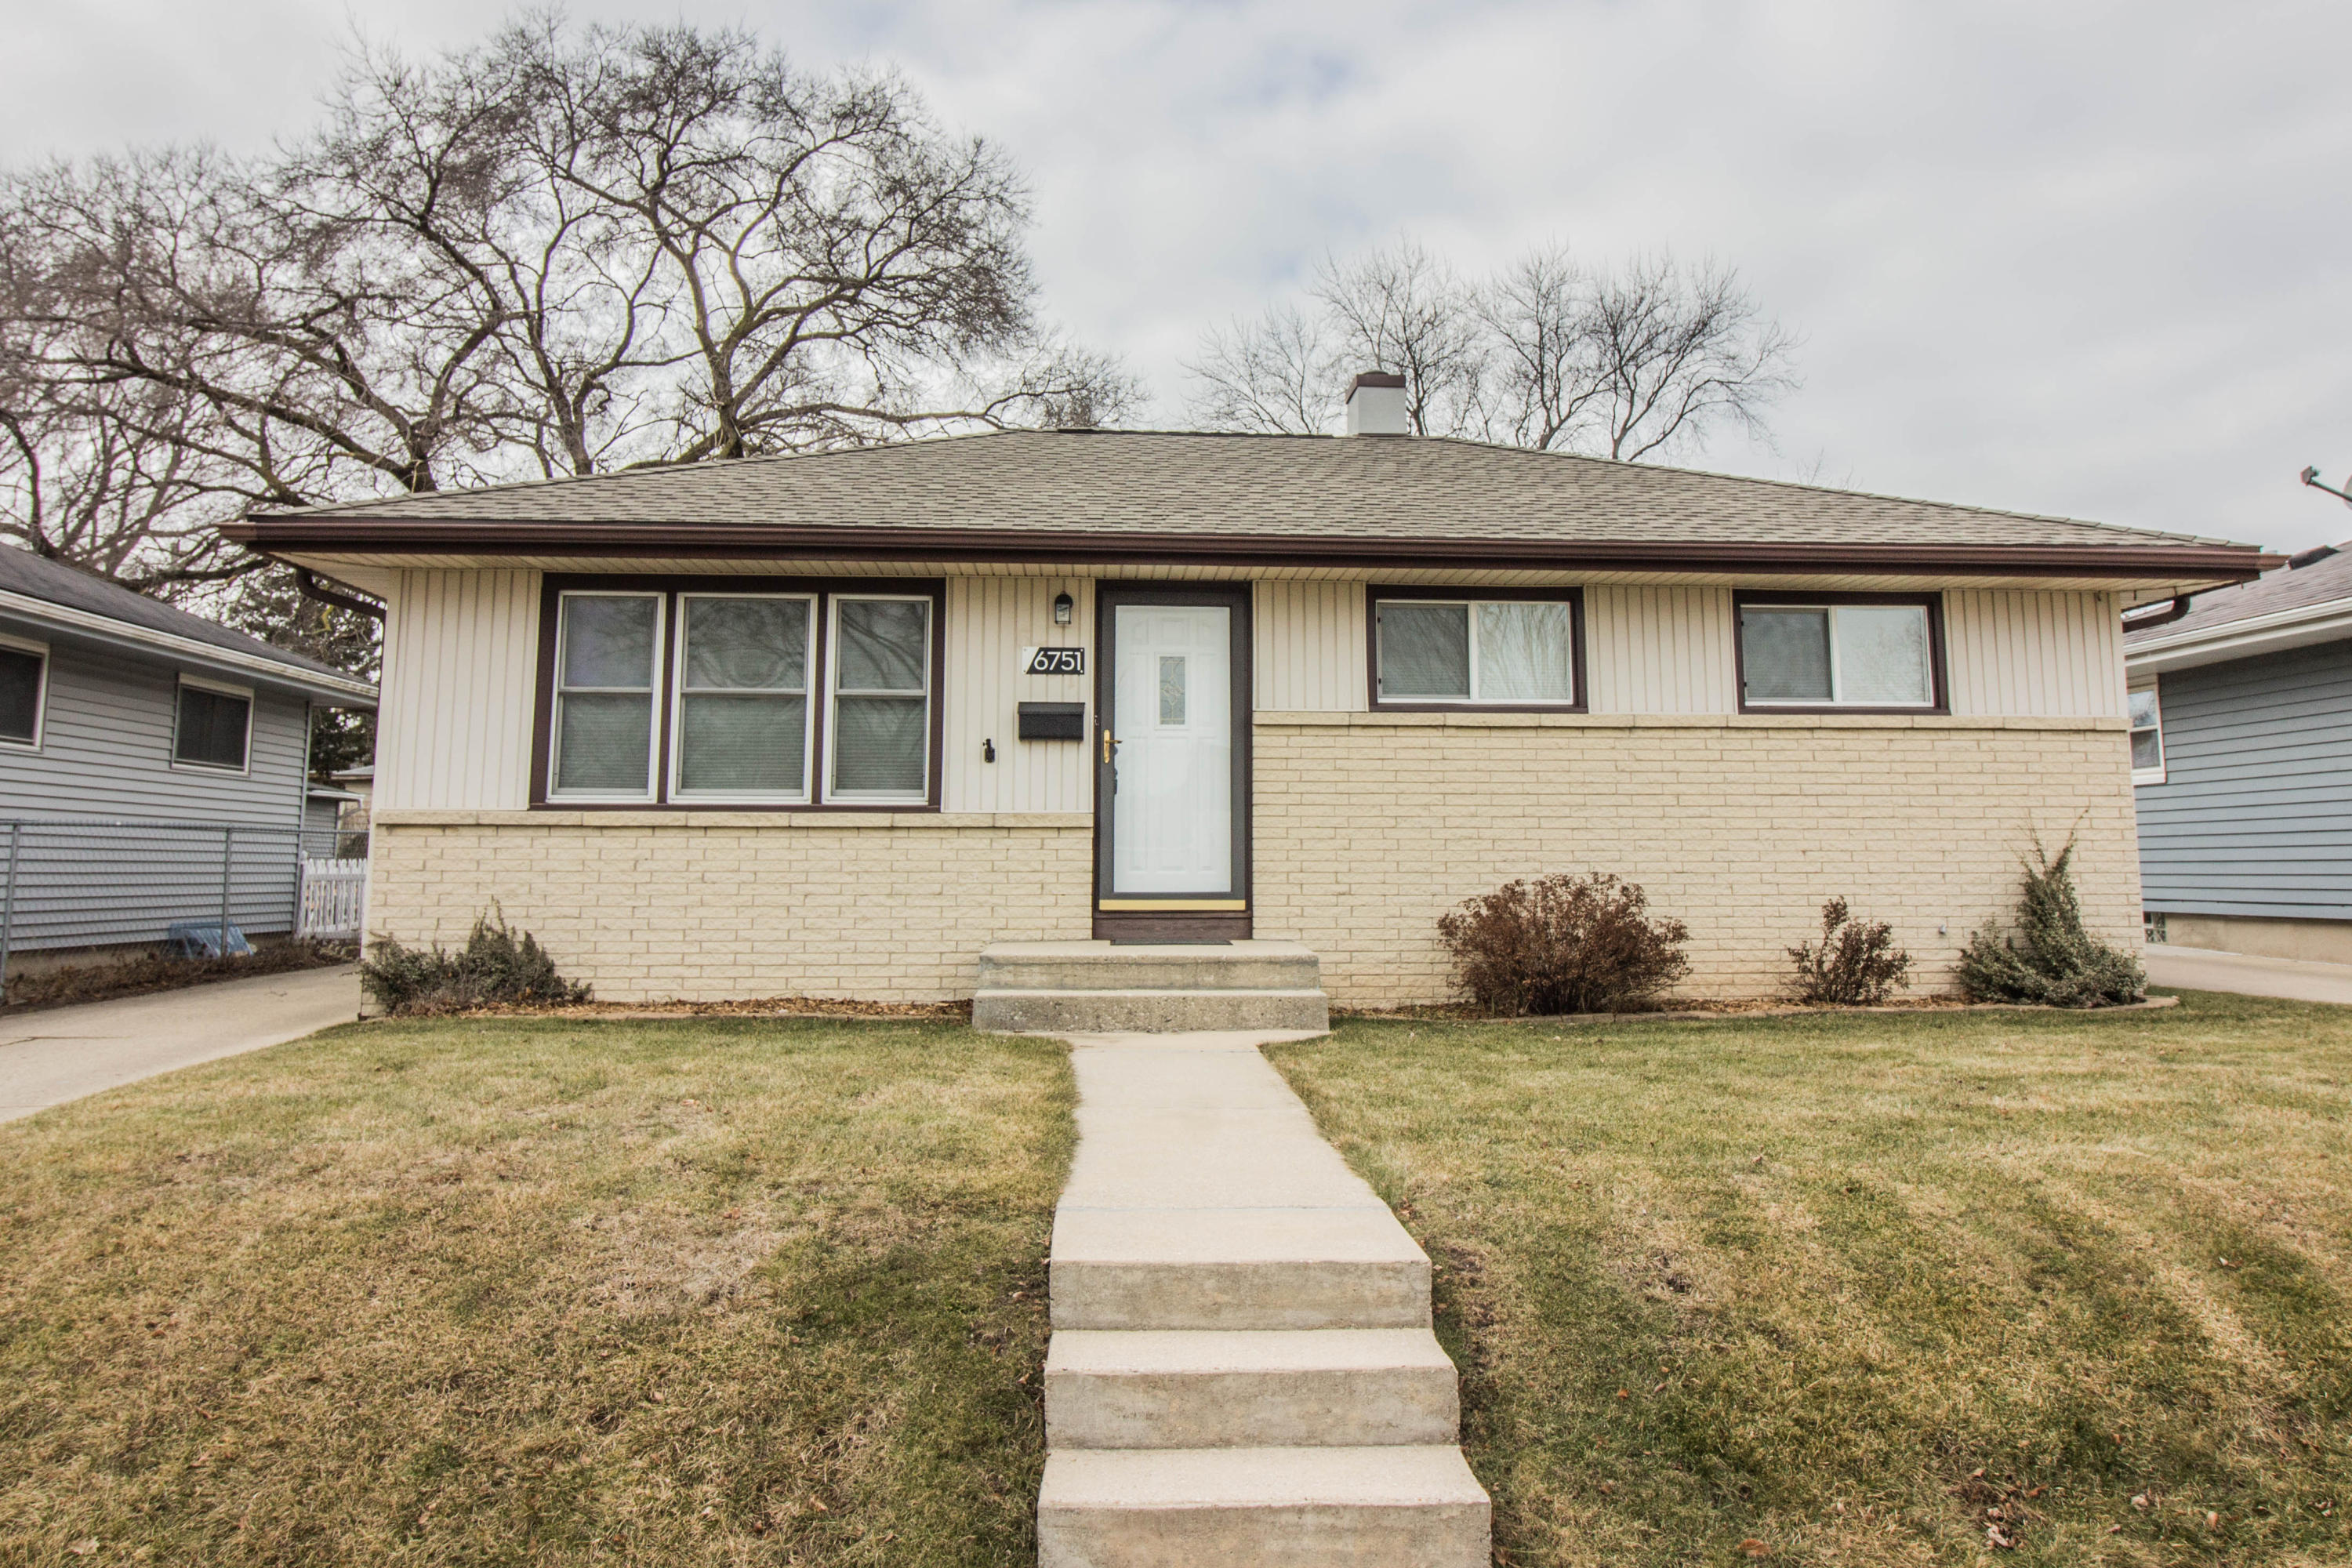 6751 17th ST, Milwaukee, Wisconsin 53221, 3 Bedrooms Bedrooms, 6 Rooms Rooms,1 BathroomBathrooms,Single-Family,For Sale,17th ST,1619872